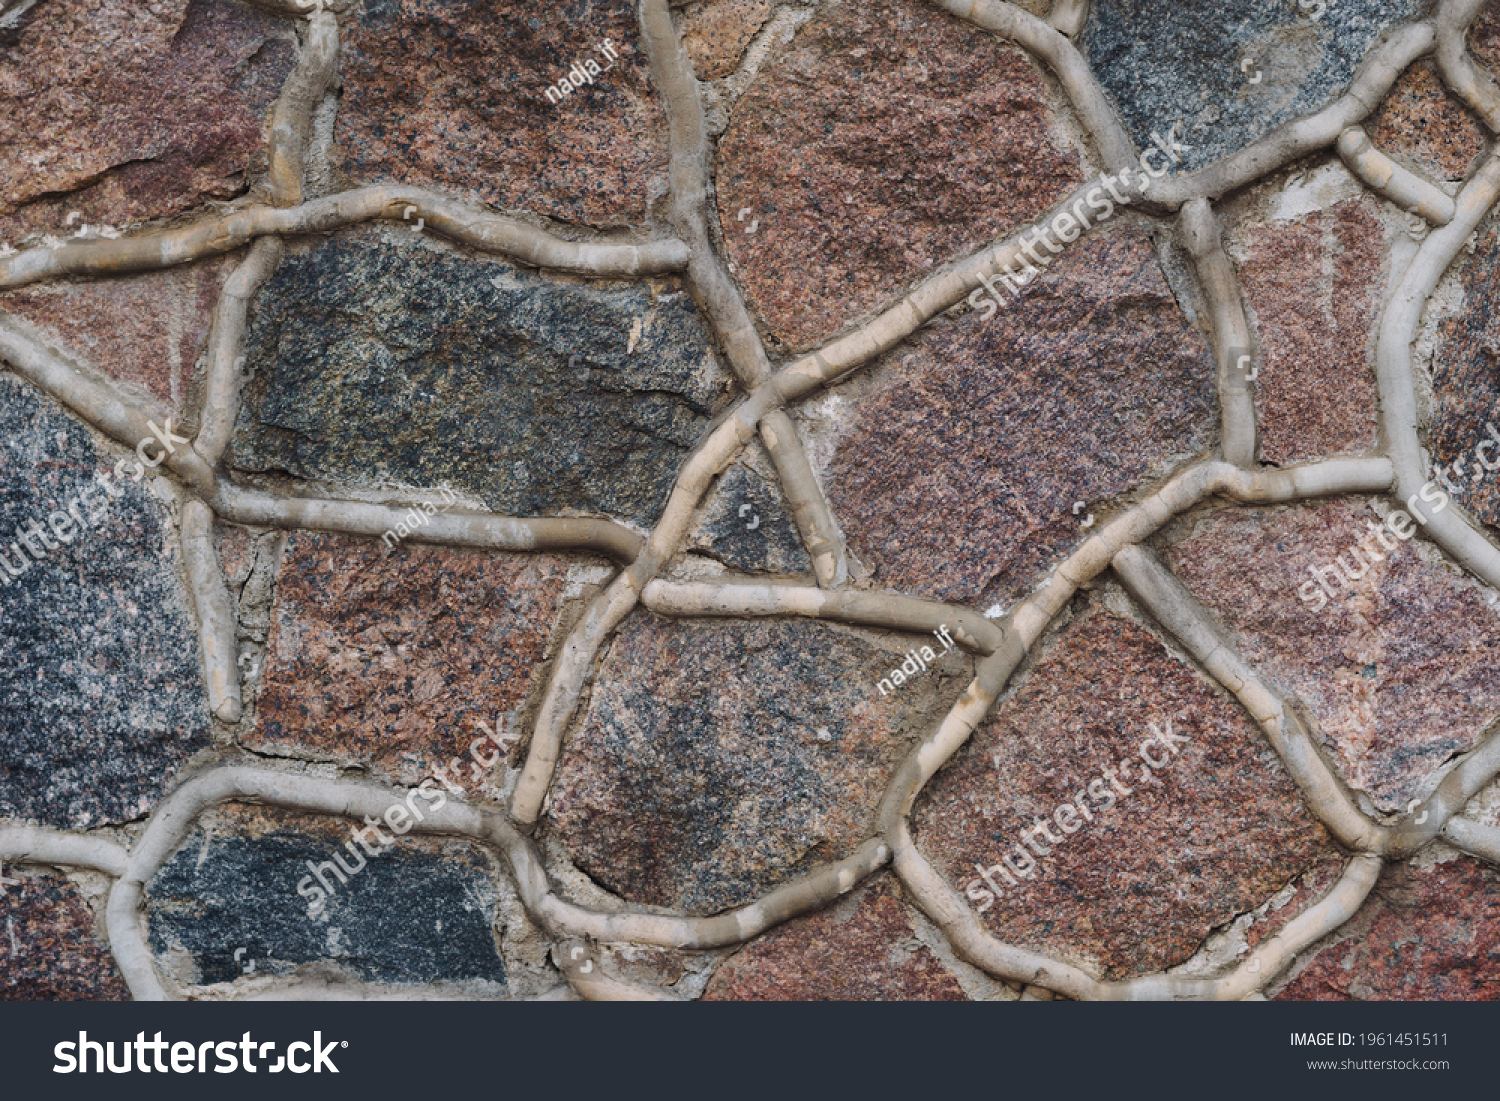 stone pavement with abstract pattern.  #1961451511